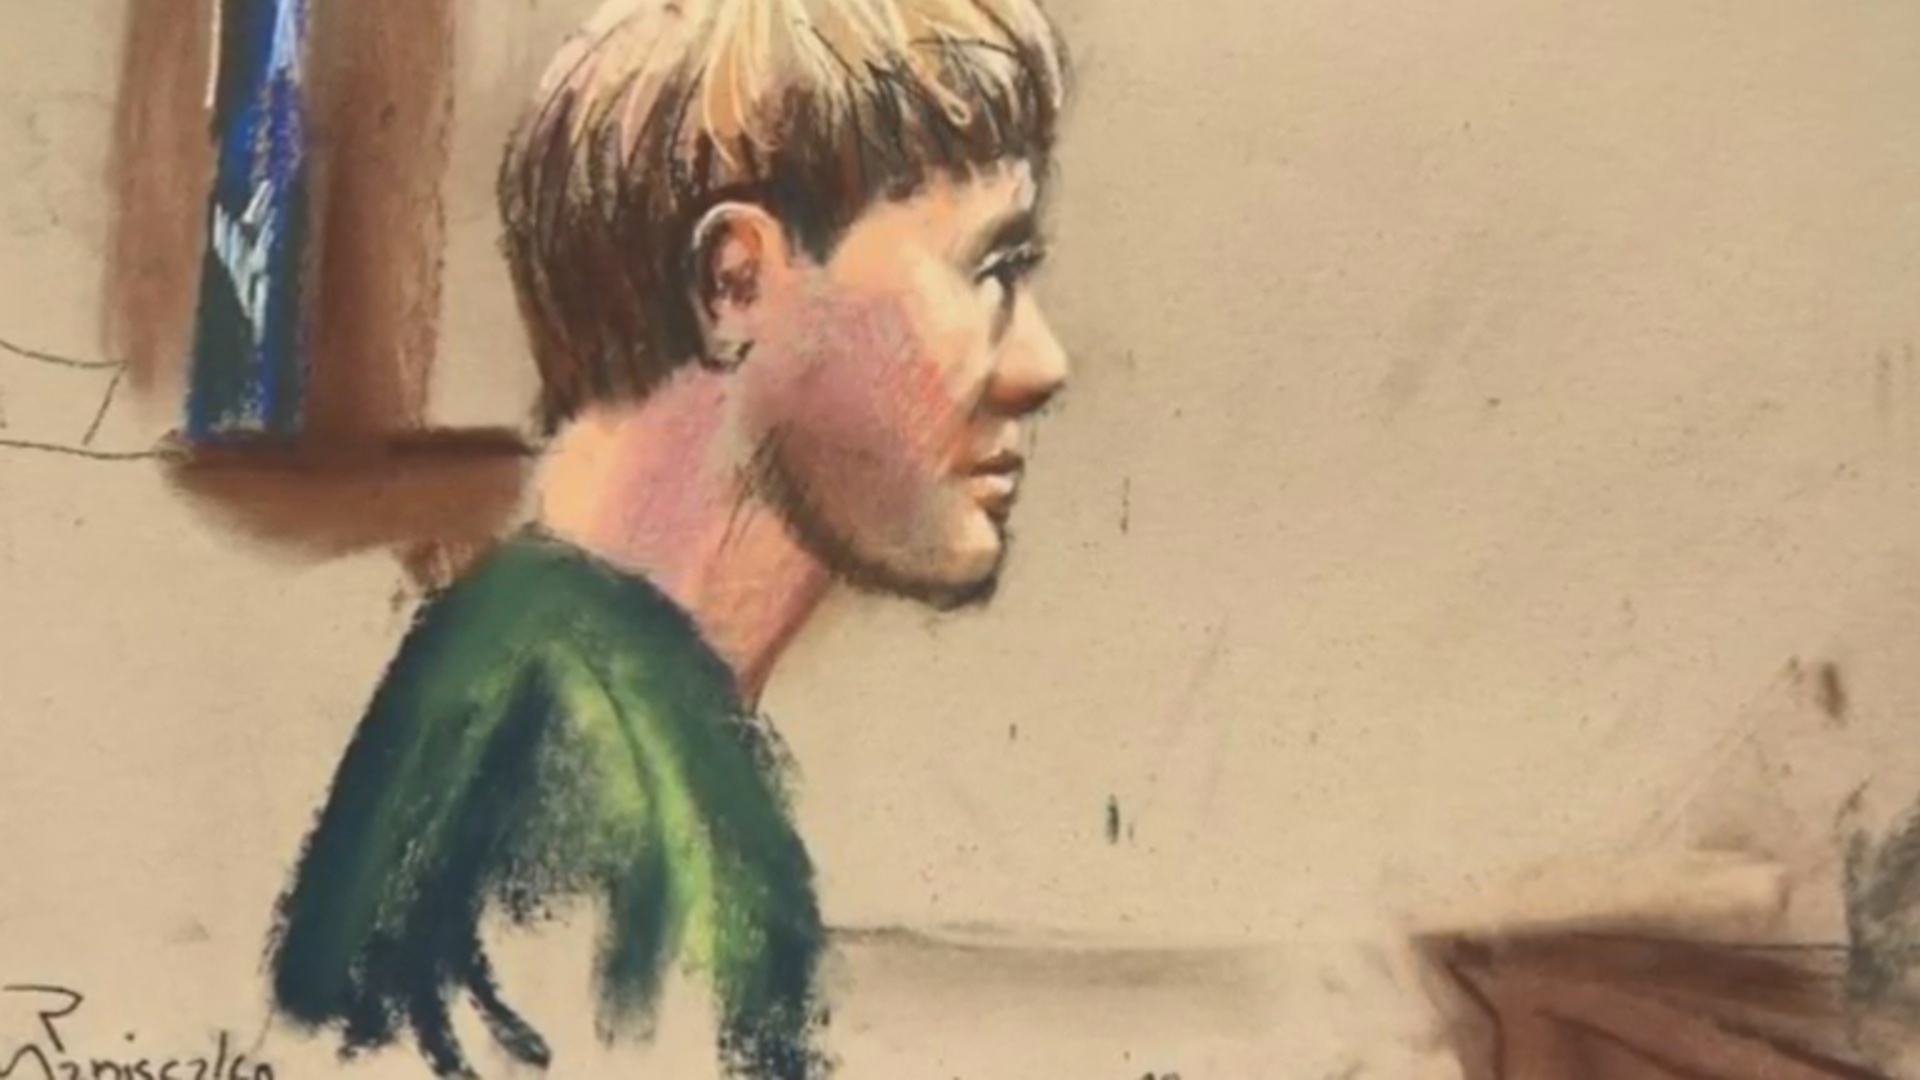 Church shooter Dylann Roof tells jurors: 'There's nothing wrong with me'